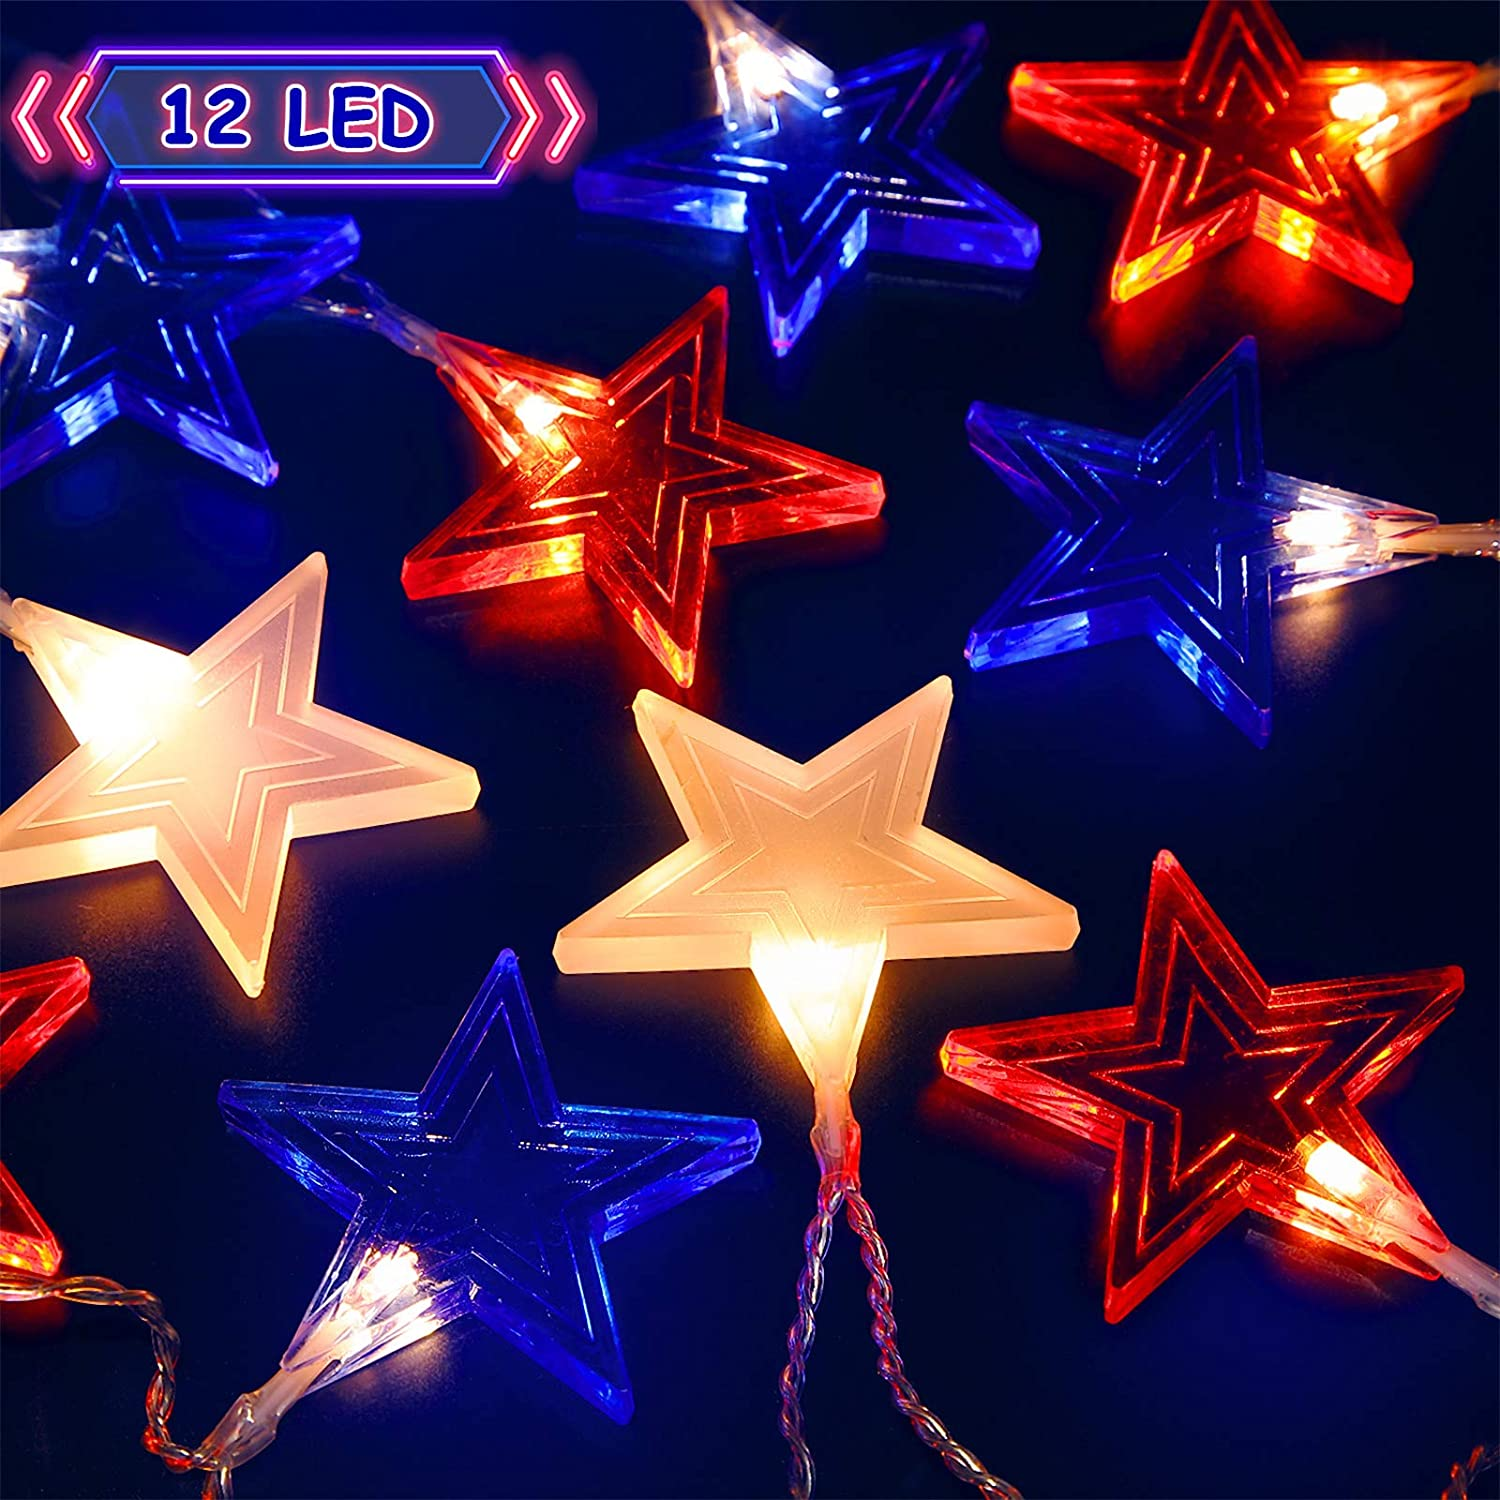 Star String Lights for Independence Day Decor, 6.6 ft 12 LEDs USA American Stars Flag Lighting, Red White Blue Lights Battery Operated Indoor Outdoor July 4th Lights Patriotic Decoration